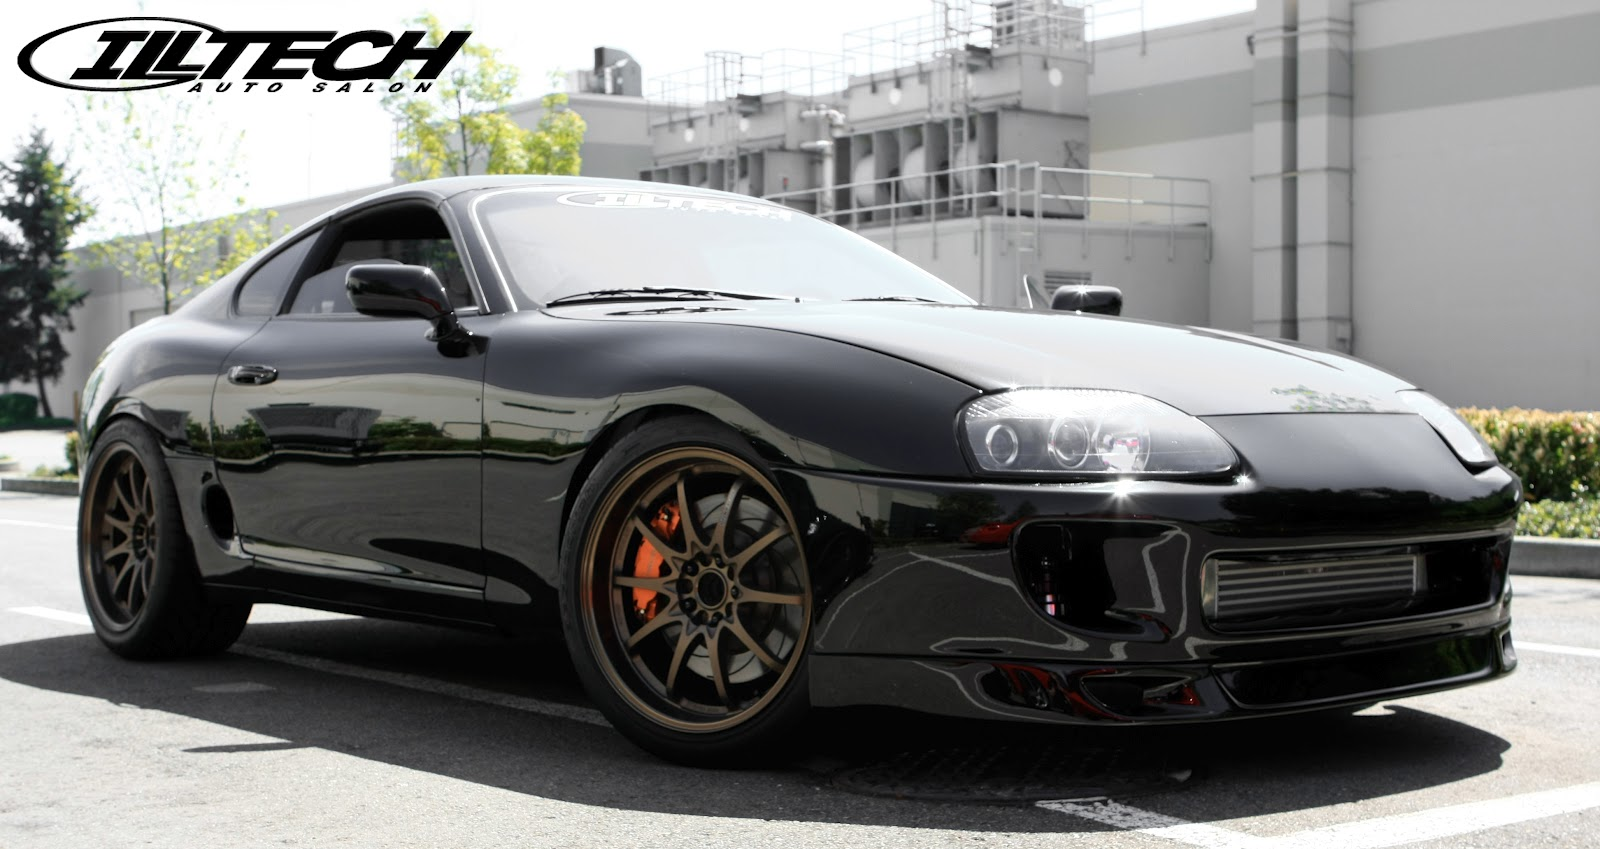 White Toyota Supra 22717 Hd Wallpapers in Cars   Imagescicom 1600x849